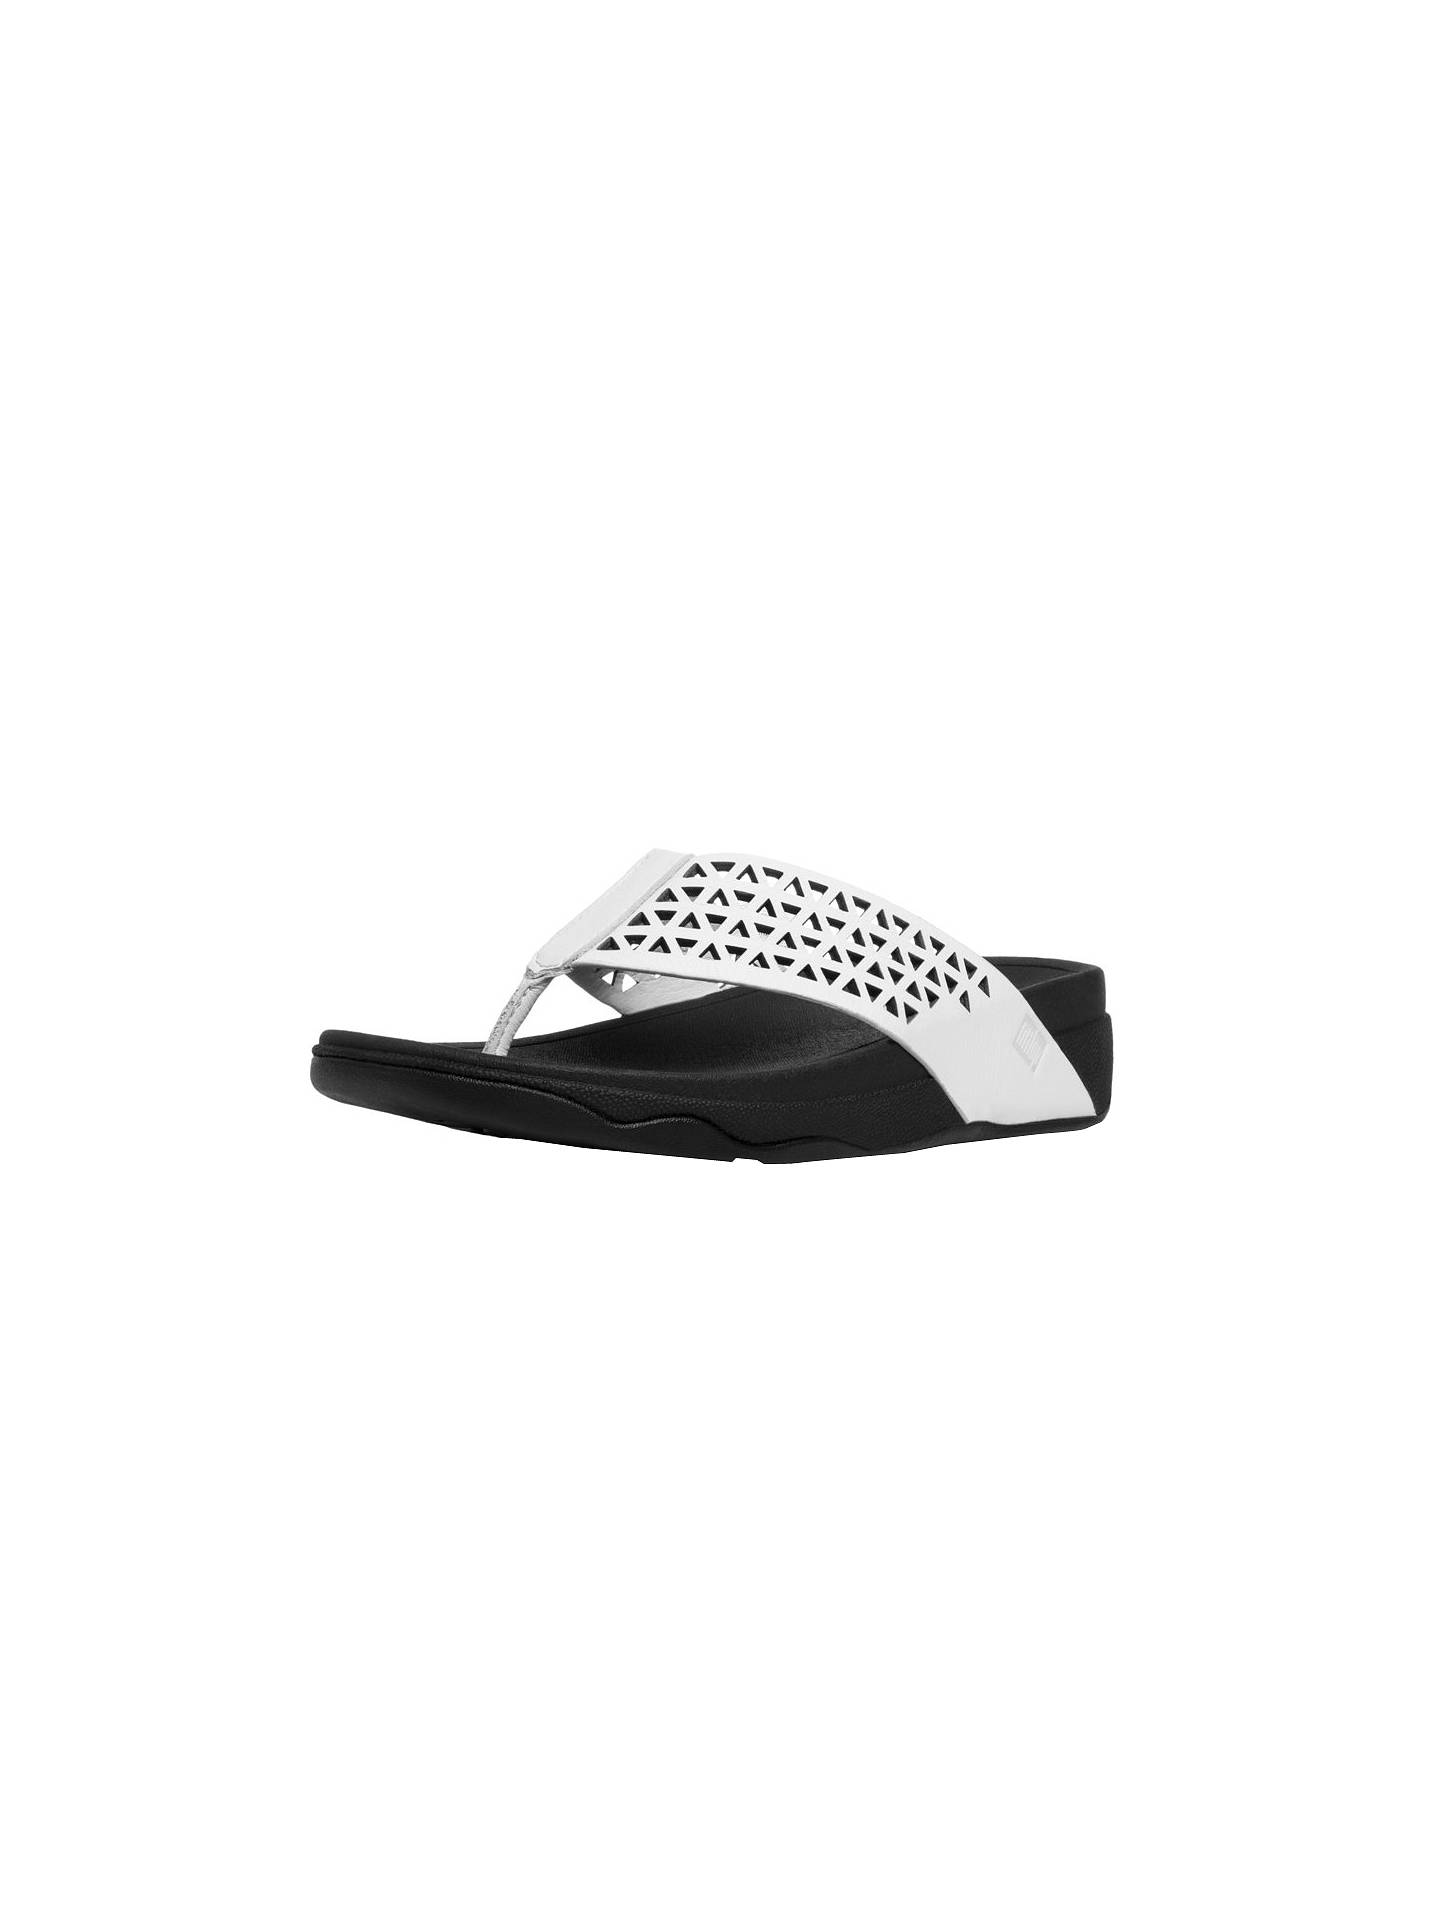 724bb512070 Fitflop Leather Lattice Surfa Sandals at John Lewis   Partners